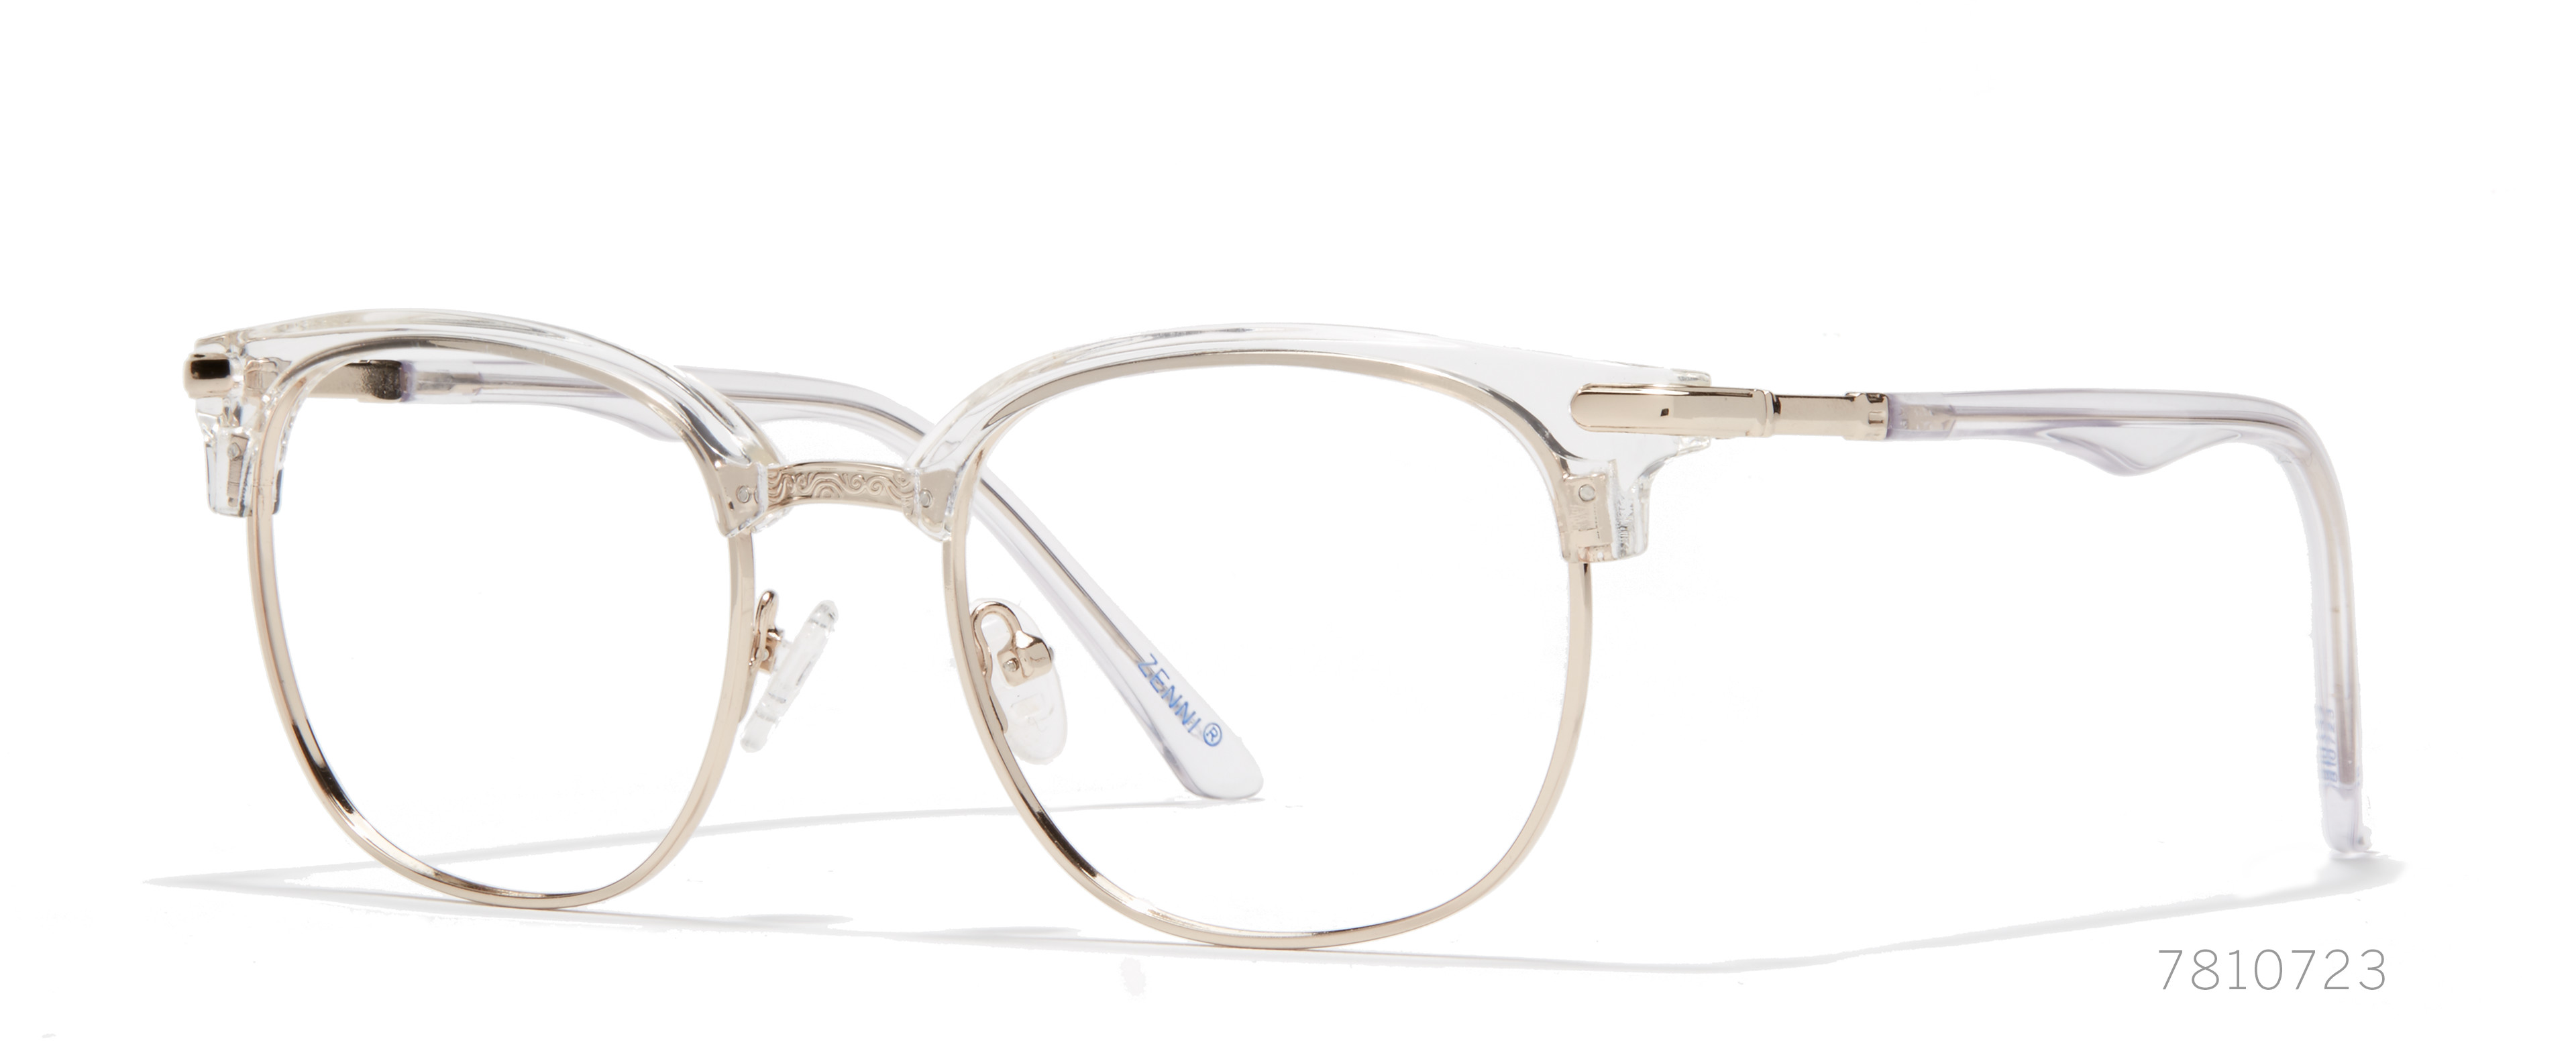 08ff26c1b237 translucent browline glasses. Translucent frames ...